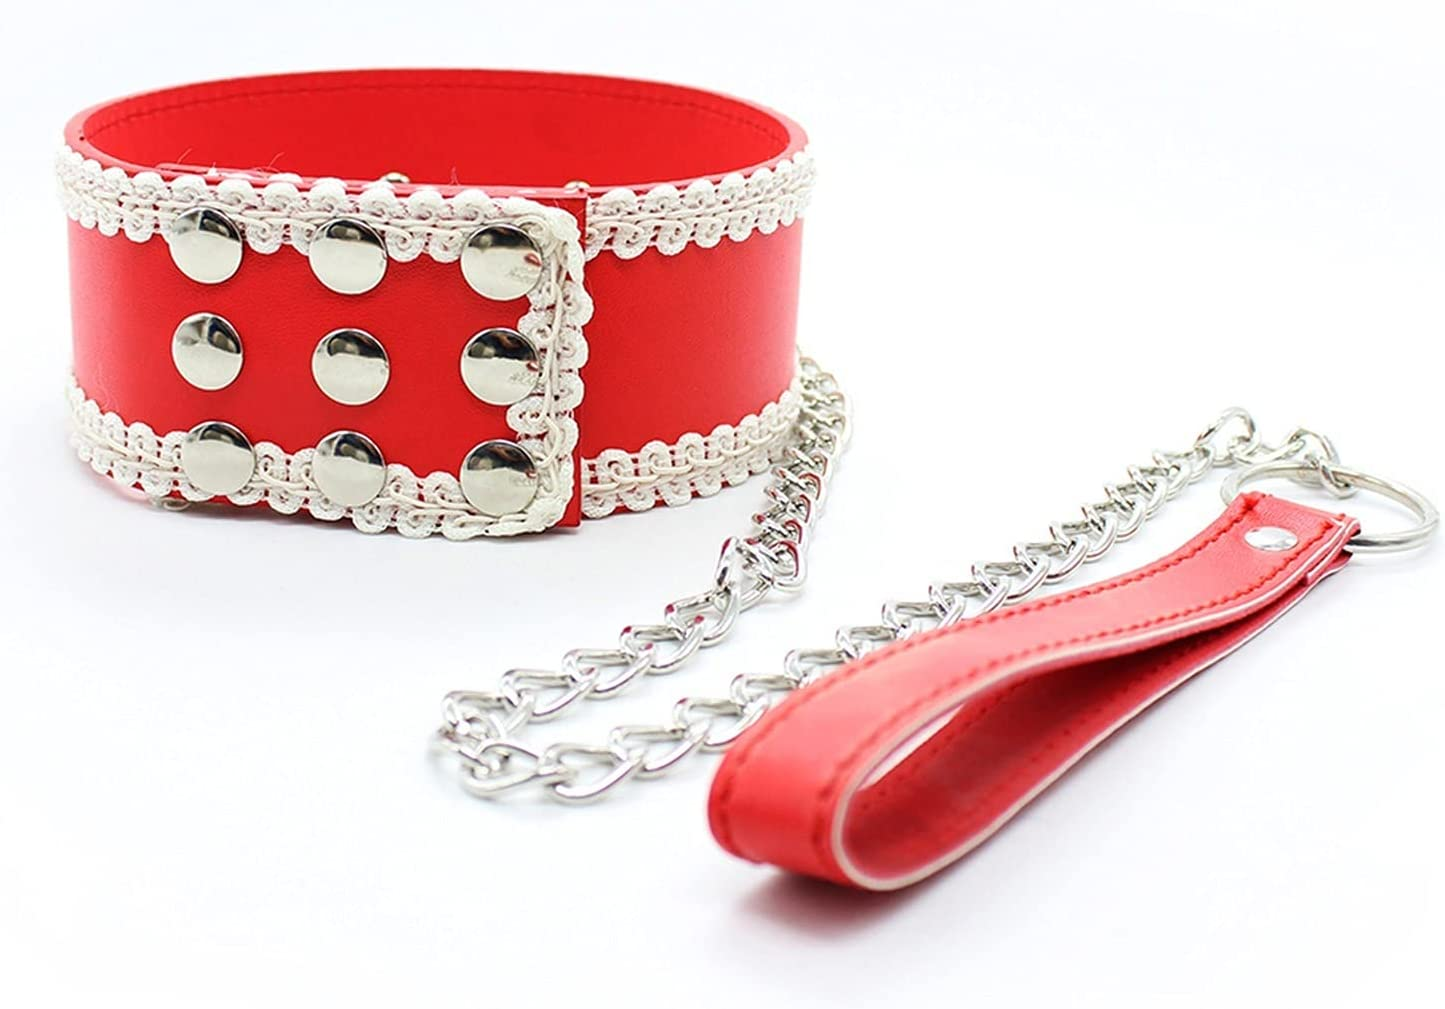 In2Ho Body Waist Belt Bedroom Decorations Party Sling Gothic Necklace Punk Collar Chain PU Leather Clavicle Collar Leash Toys Choker Rock Belt Fashion Jewelry Gifts for Adults Cosplay Women Couples